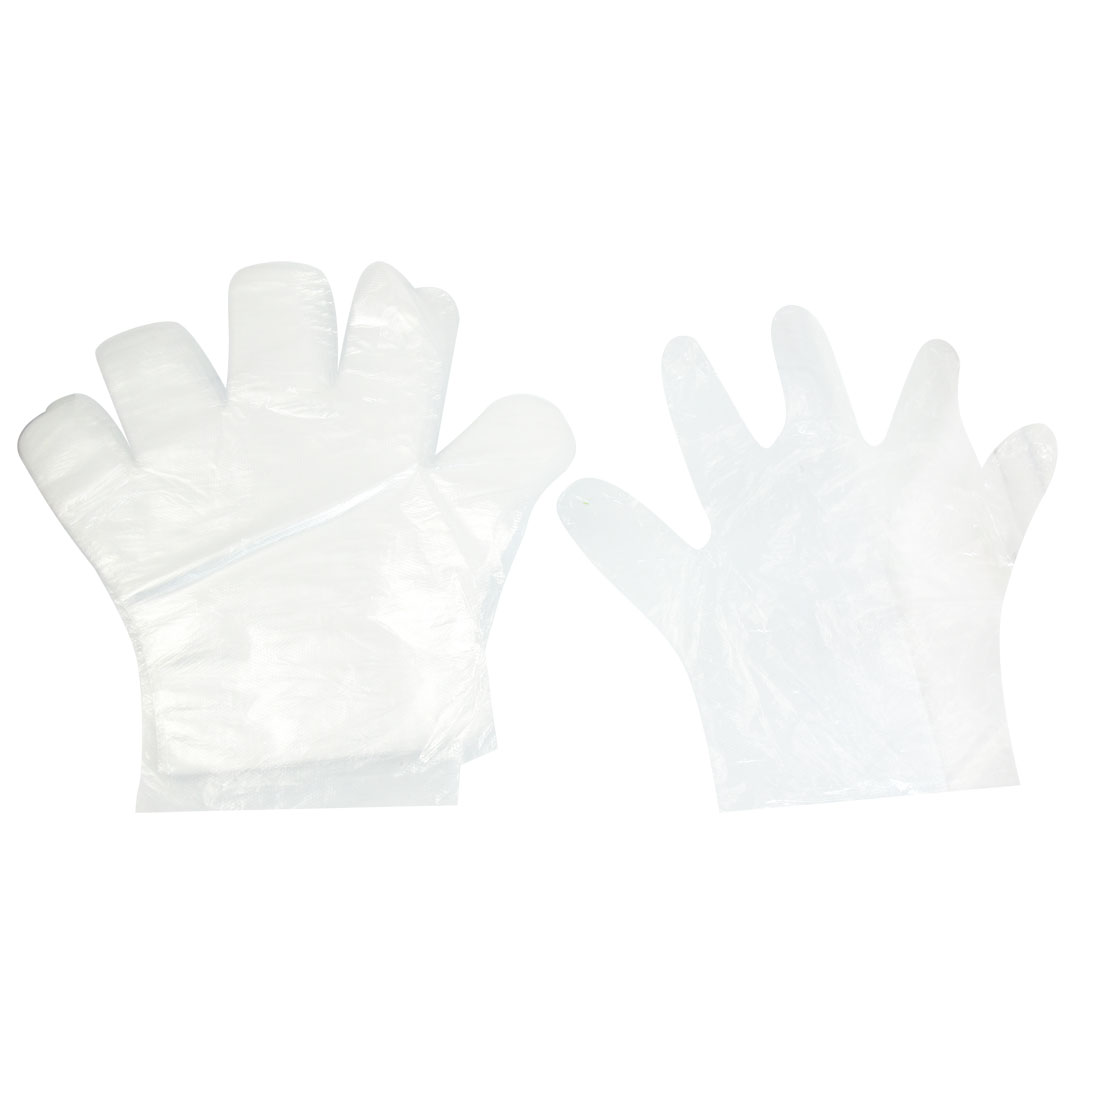 30 Pcs Food Service Hand Protective Plastic Disposable Gloves Clear